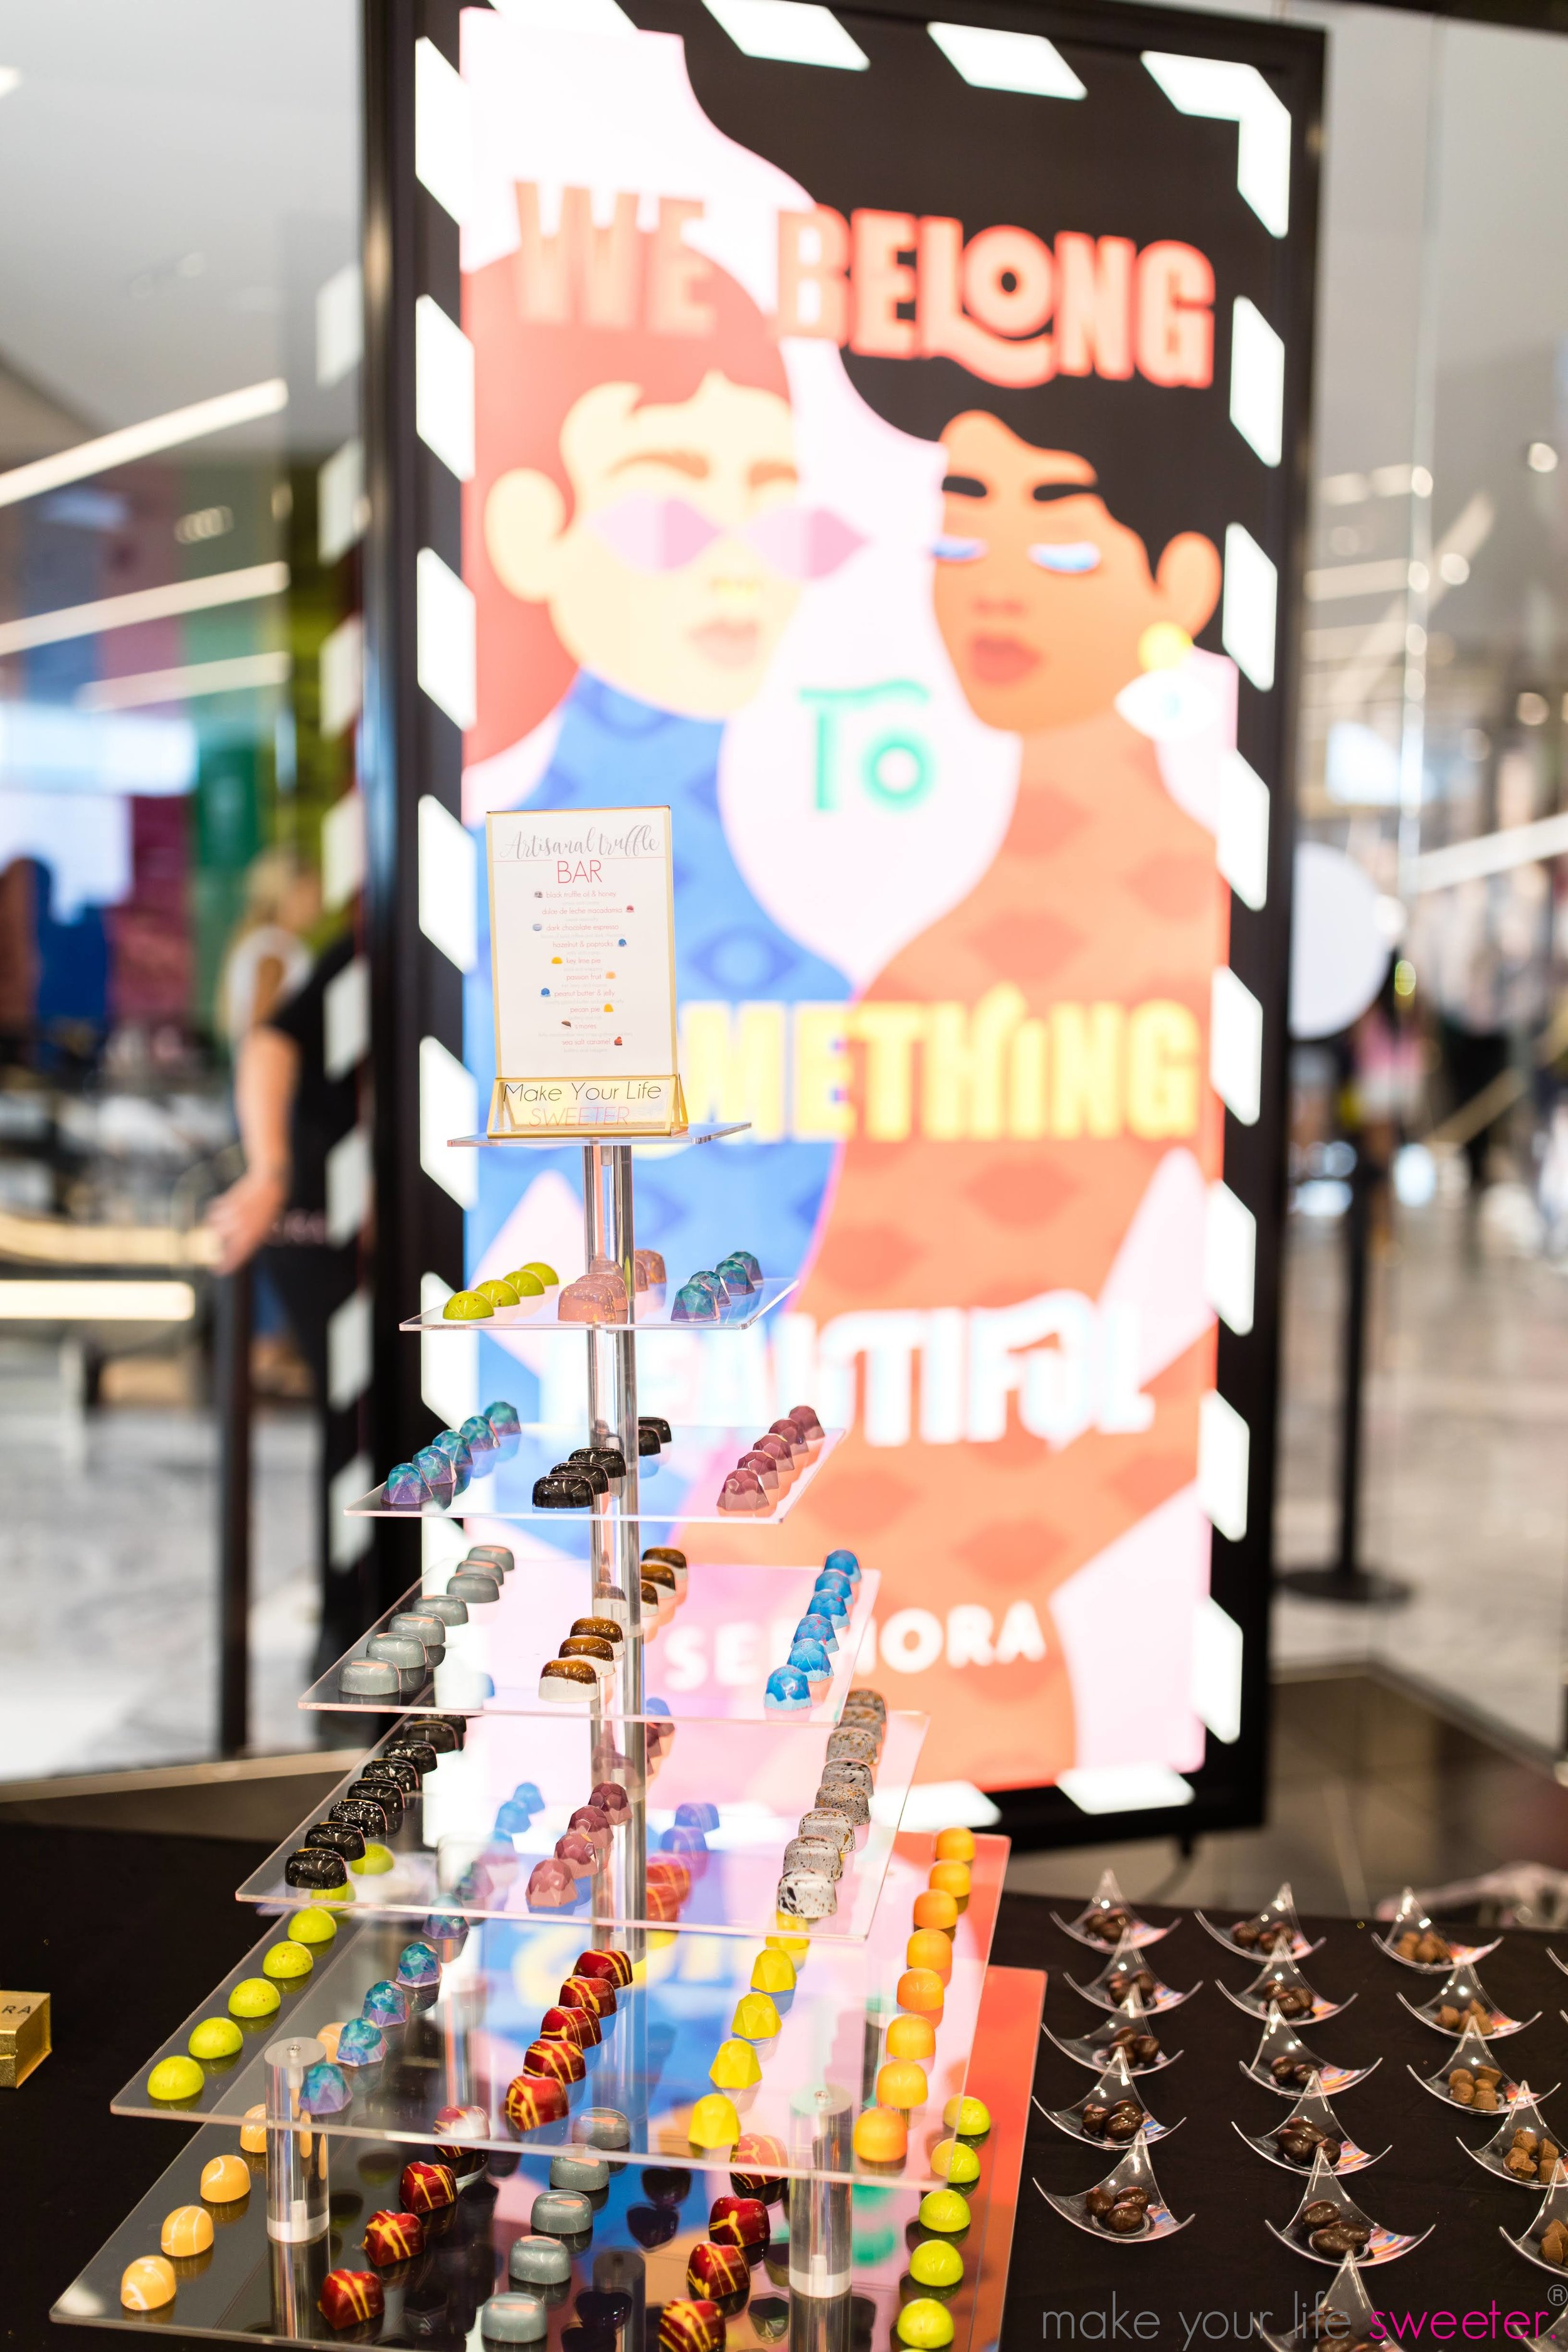 Make Your Life Sweeter Events: Sephora Hudson Yards - Artisanal Chocolate Tasting Bar